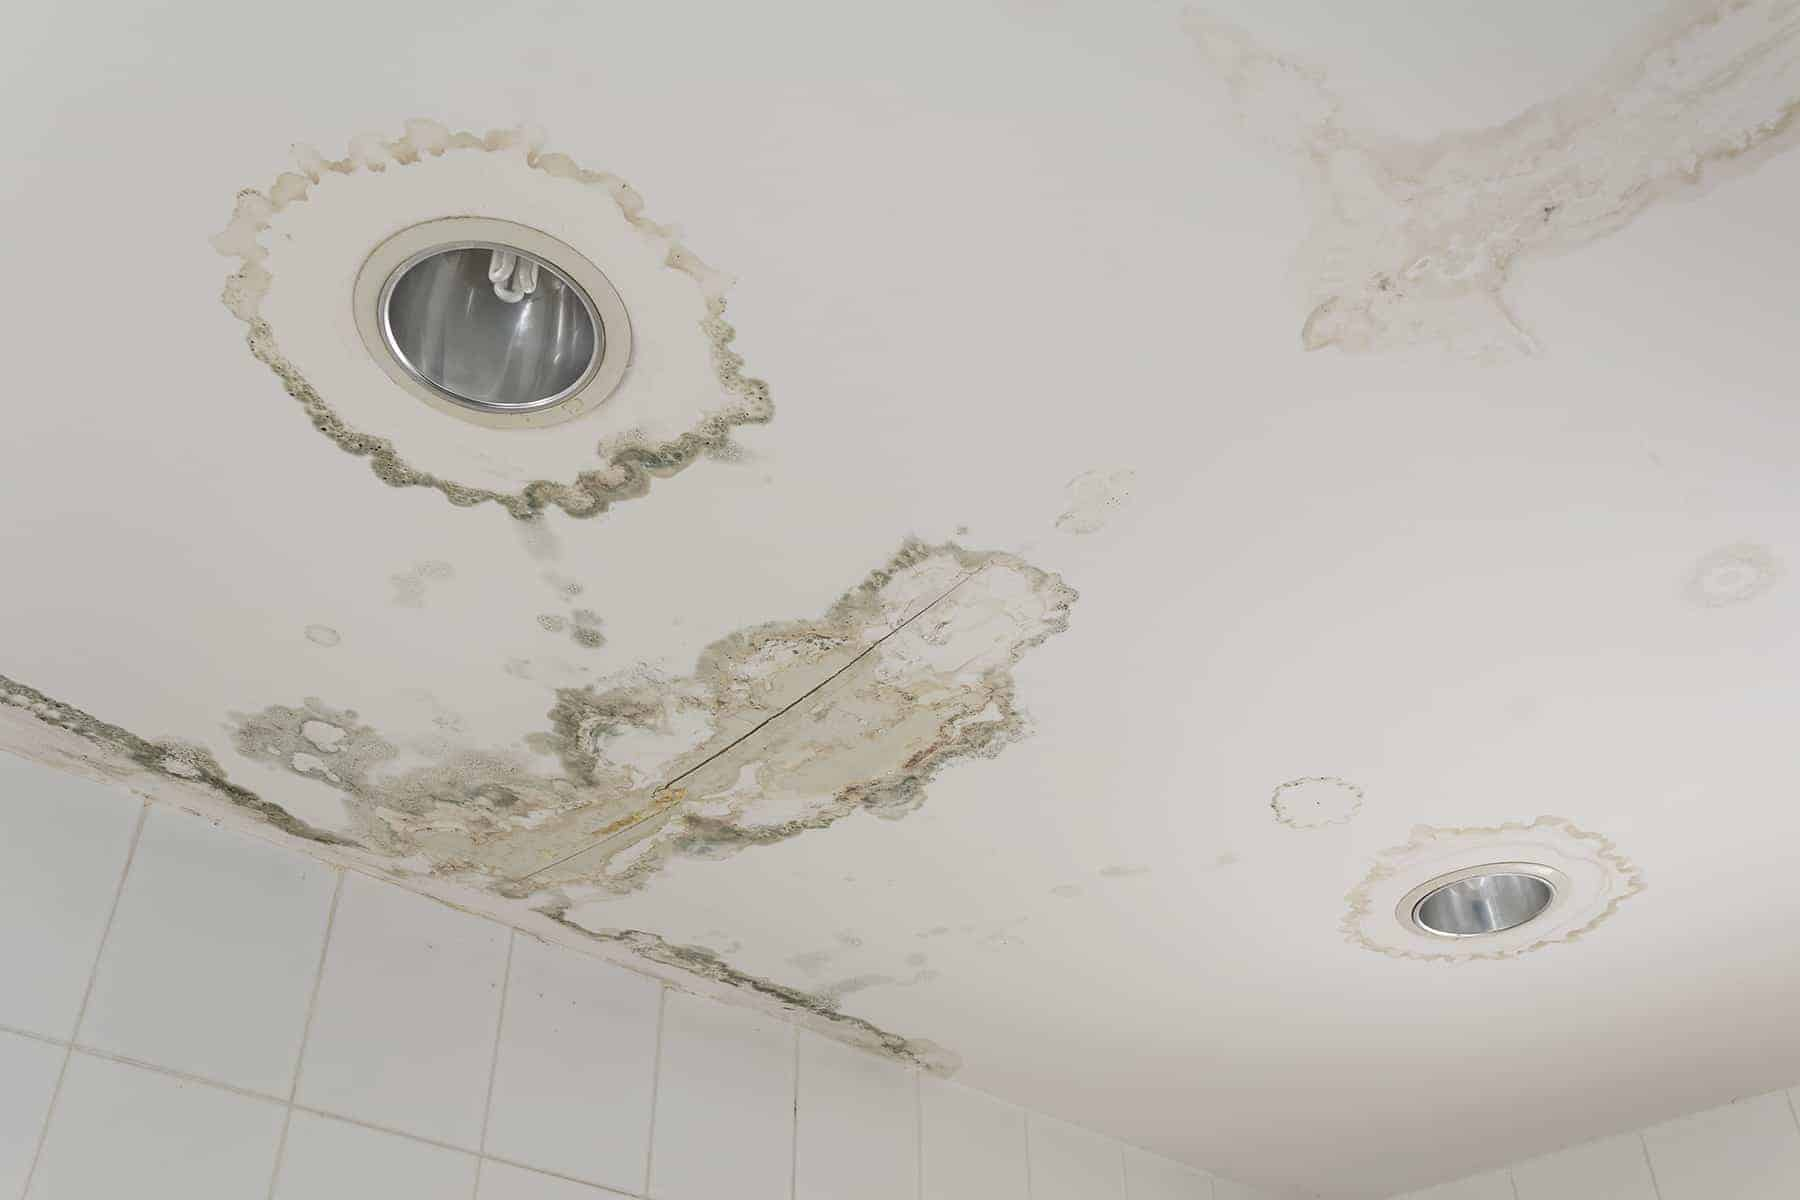 Water Damage Ceilings What To Do And Who To Call In 2019